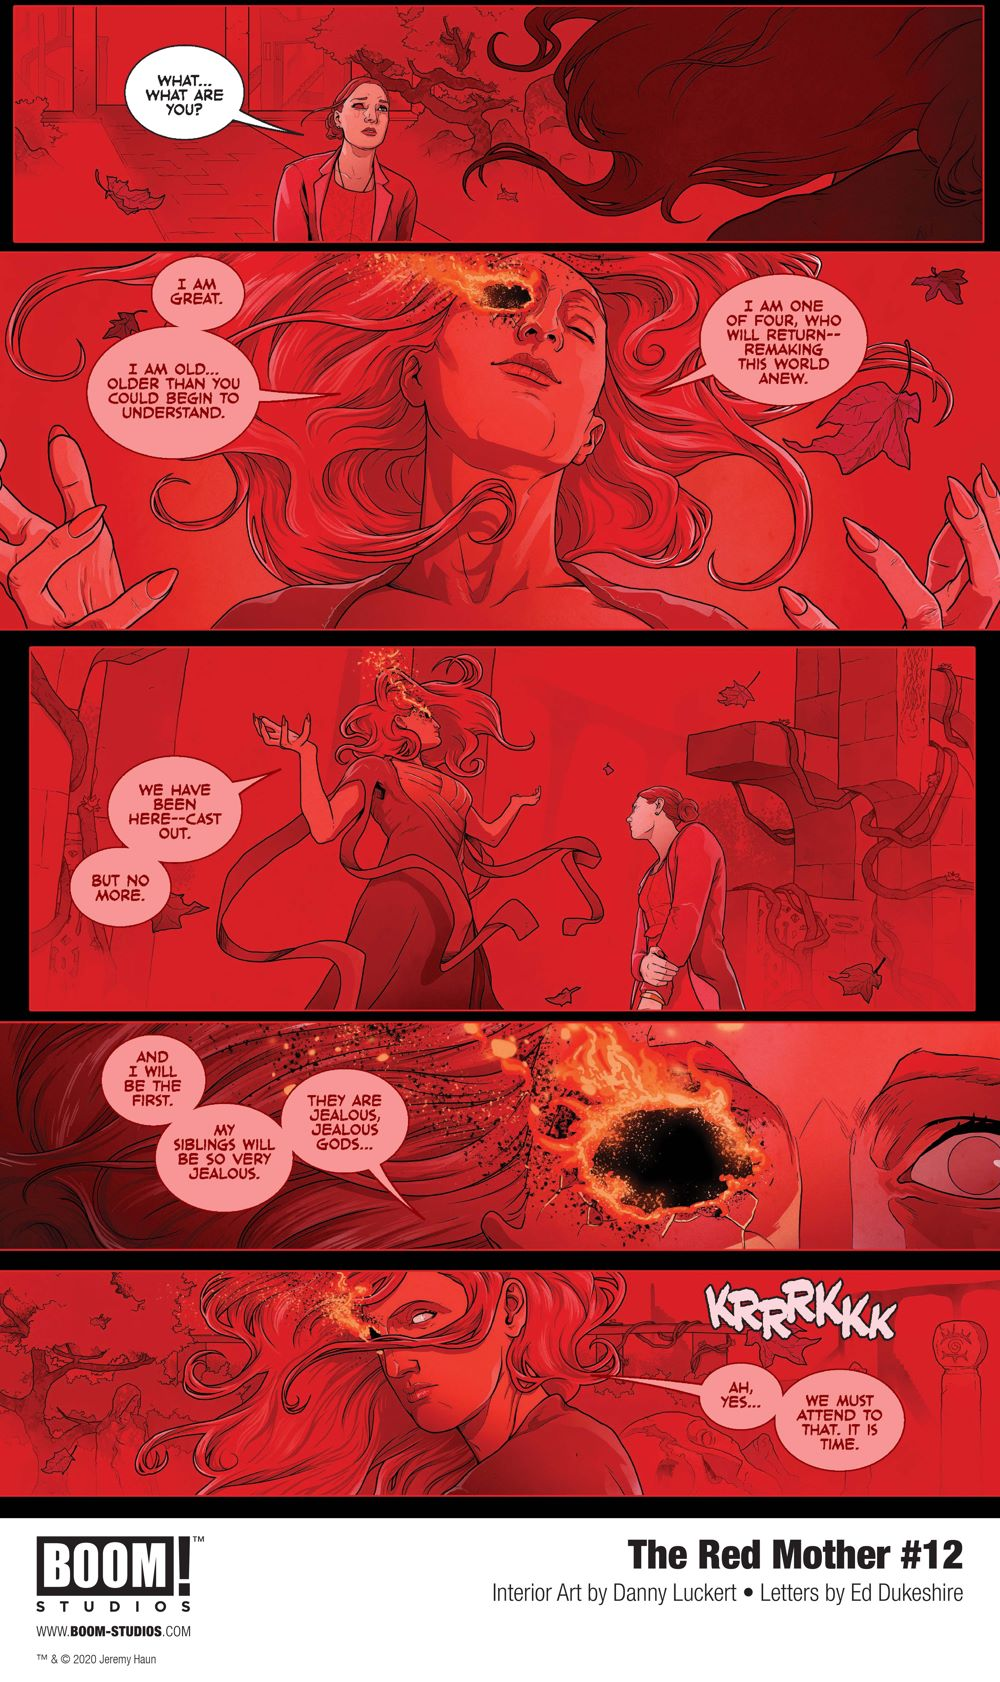 RedMother_012_InteriorArt_005_PROMO First Look at BOOM! Studios' THE RED MOTHER #12